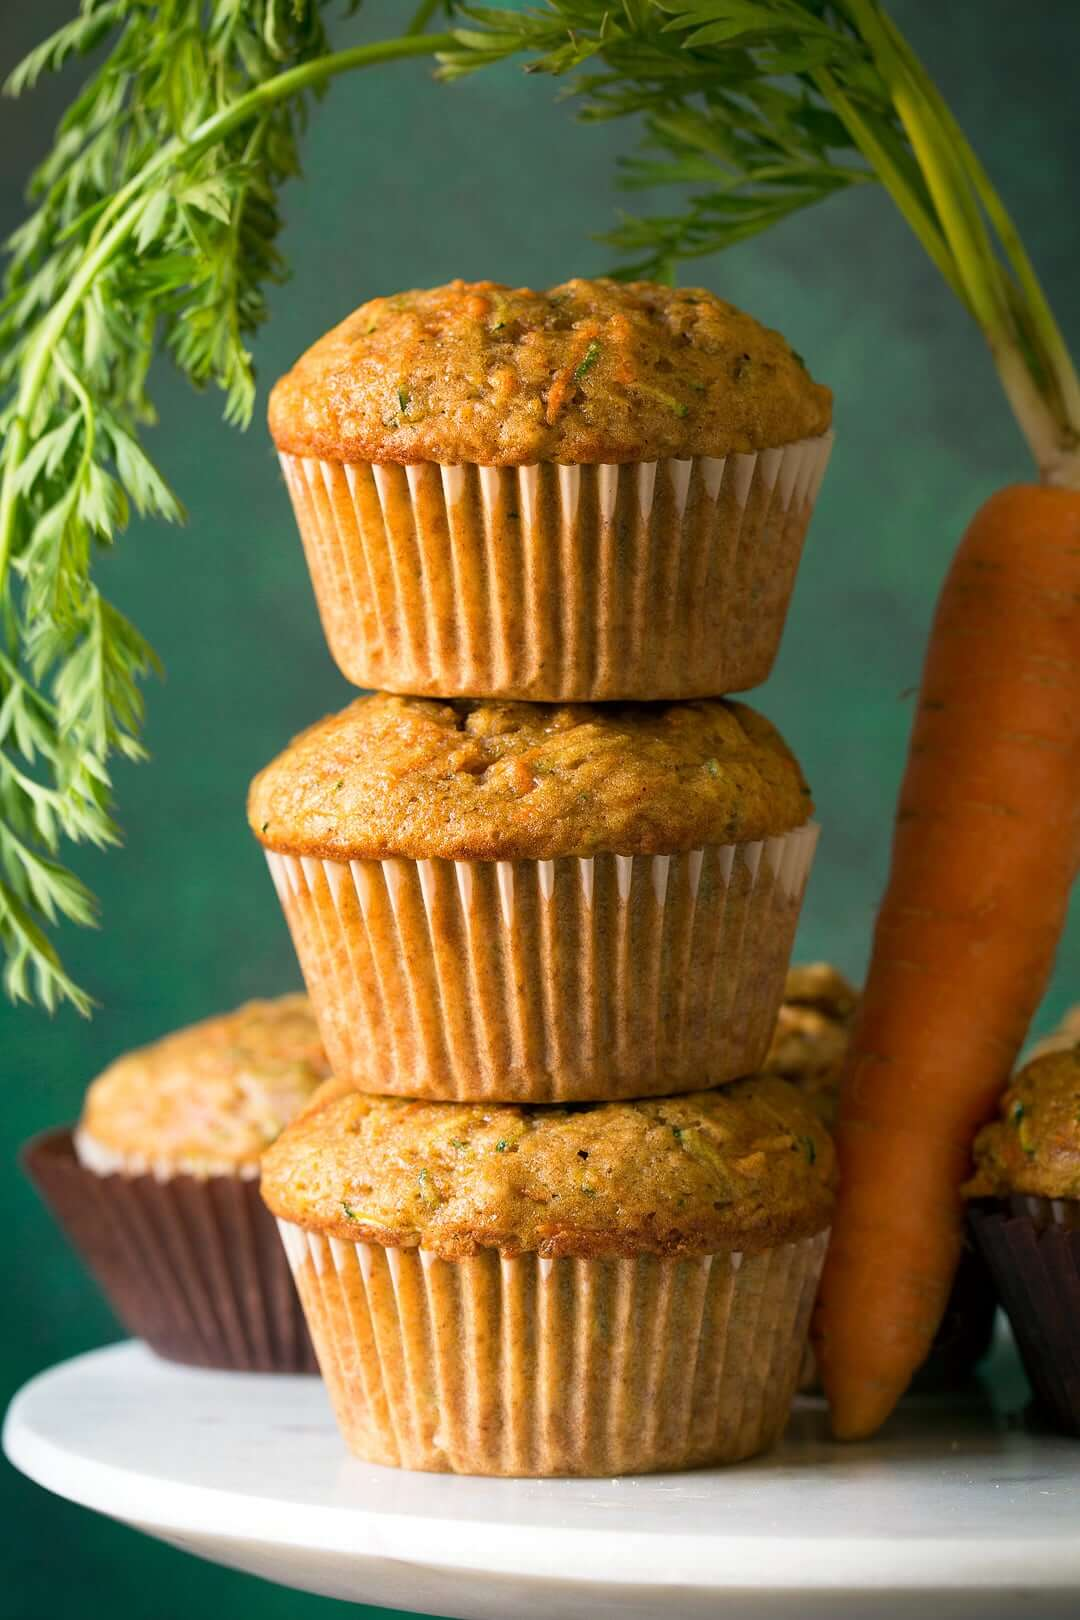 Carrot Zucchini Spice Muffins from Cooking Classy